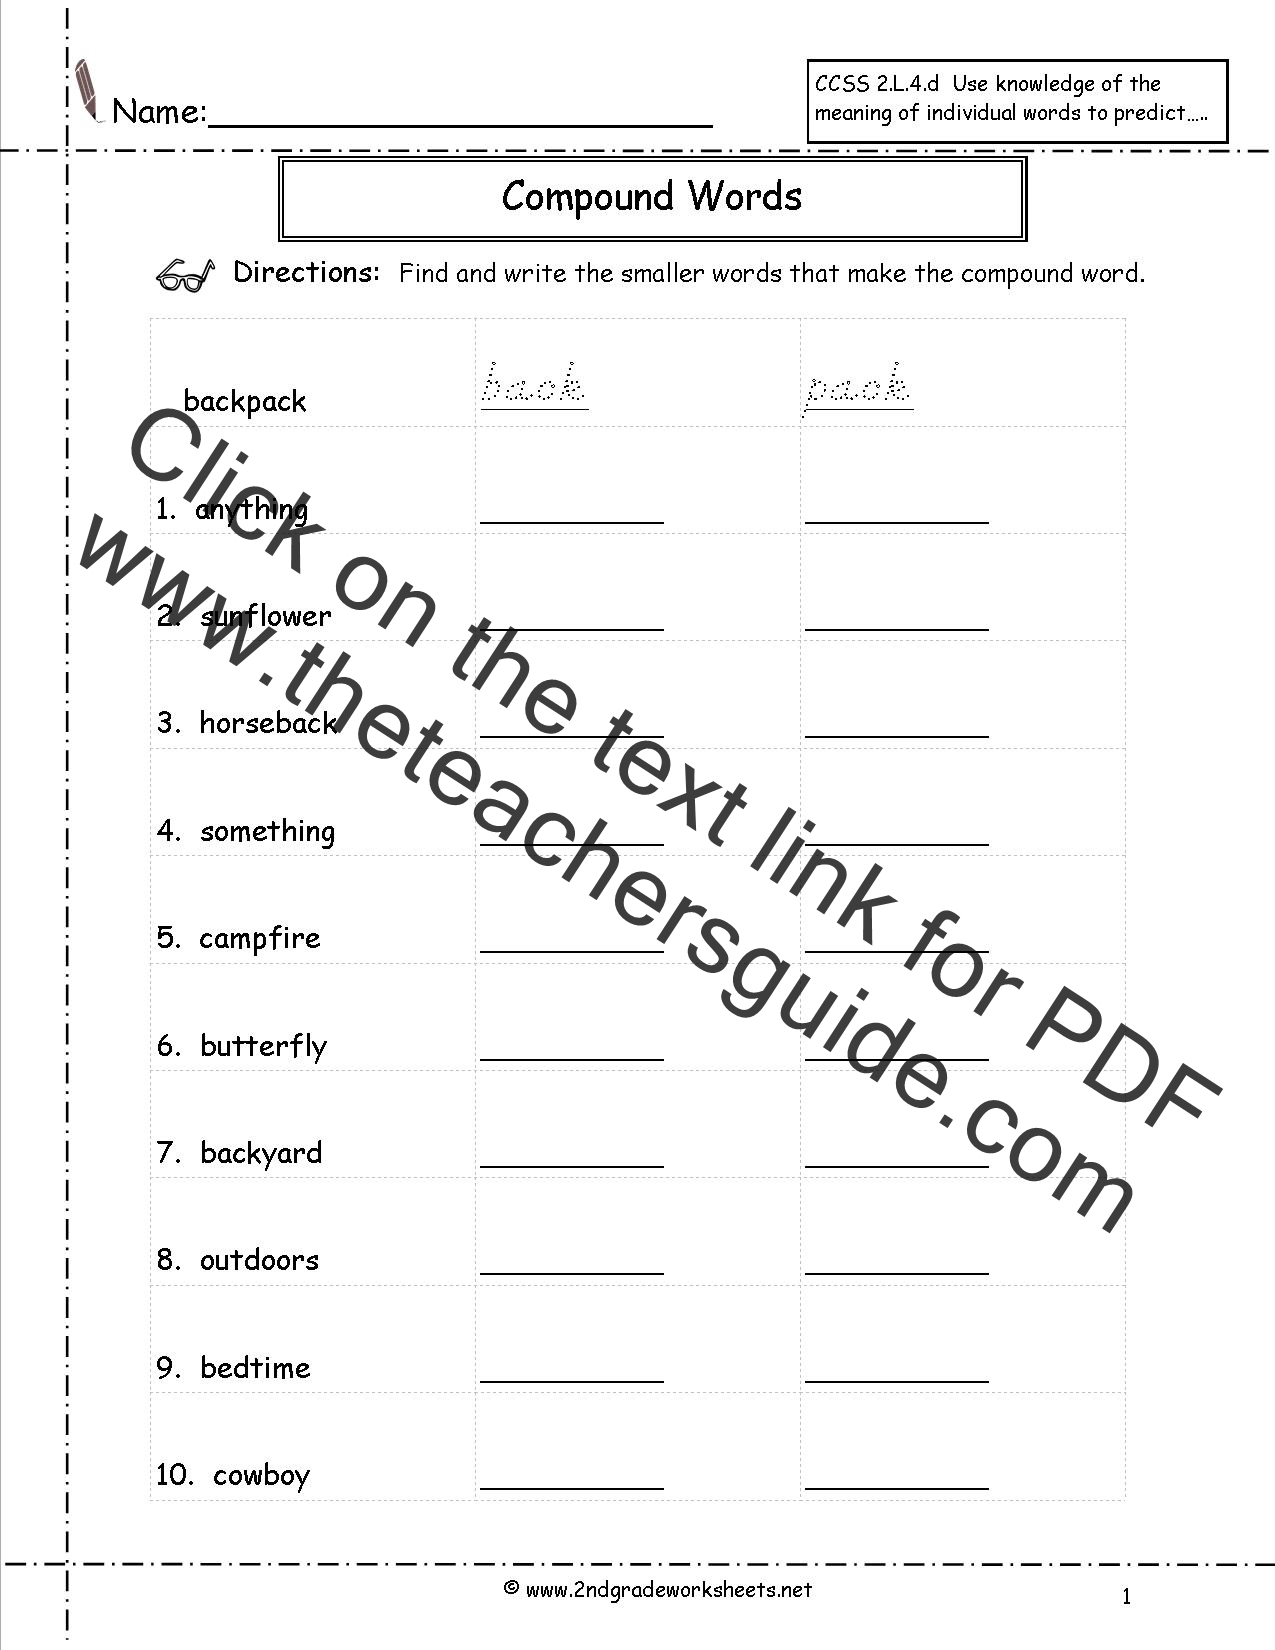 Worksheets Compound Words Worksheets compound words worksheets worksheet